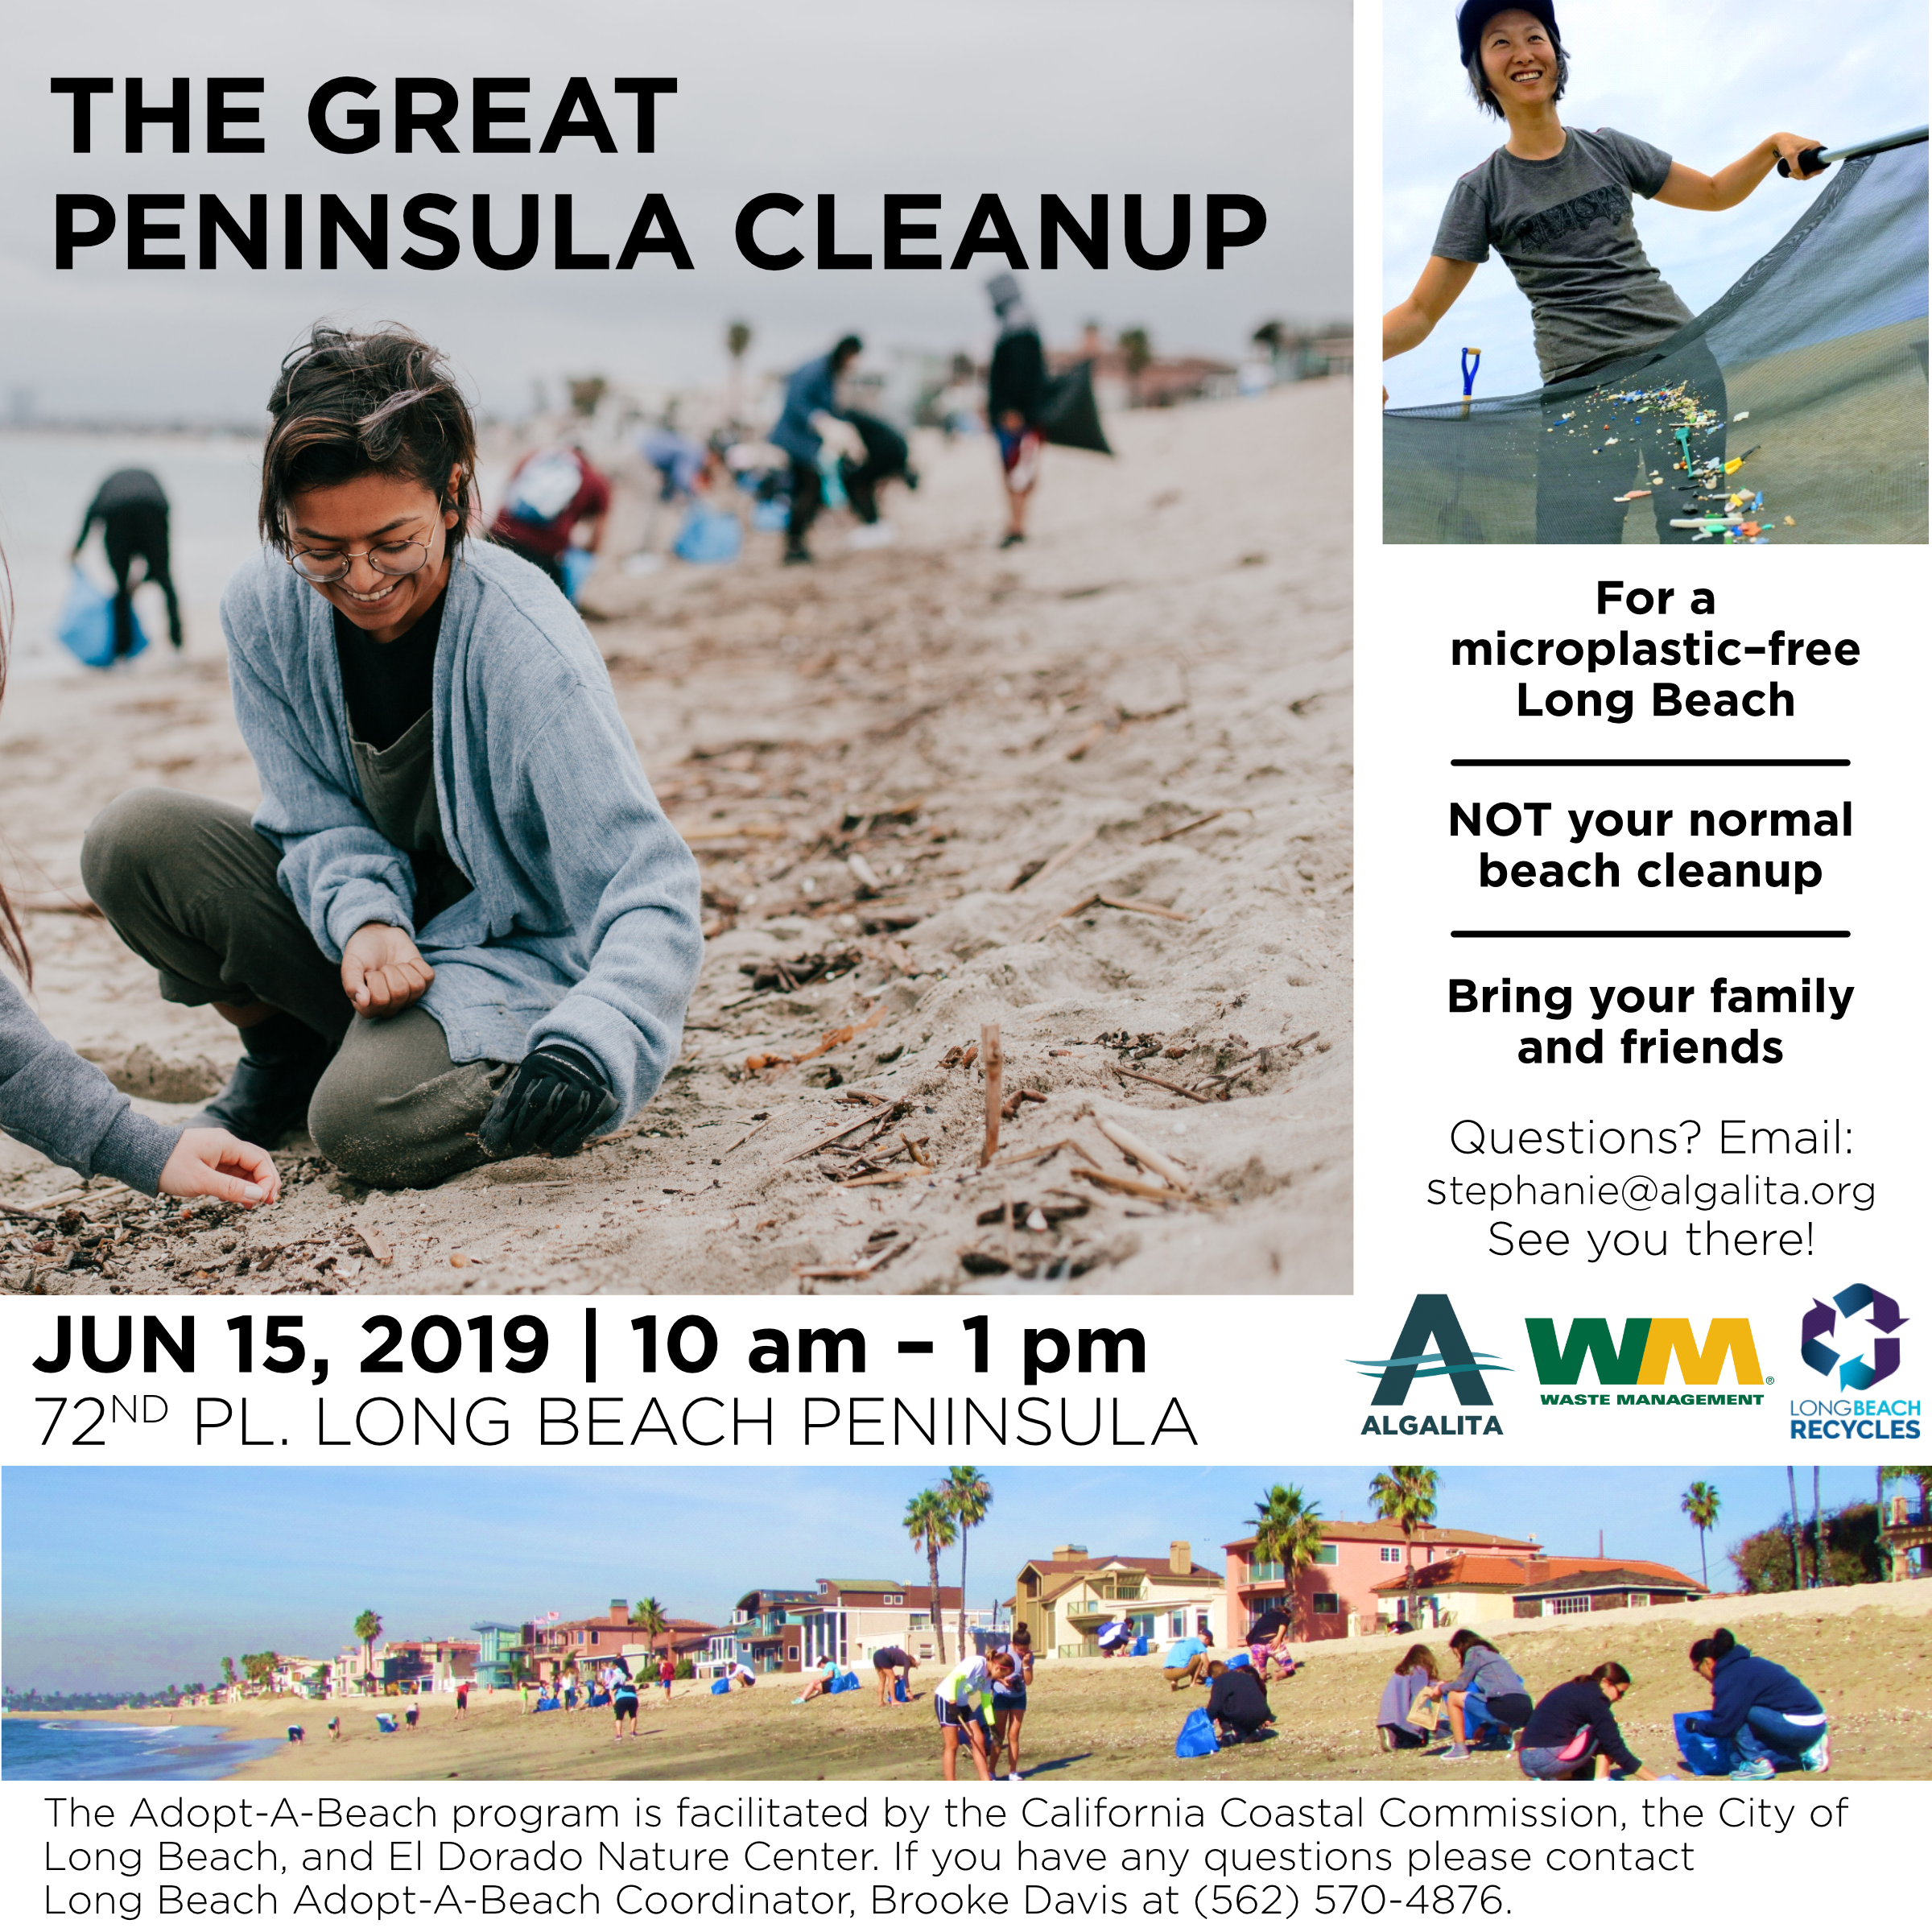 Great Peninsula Cleanup